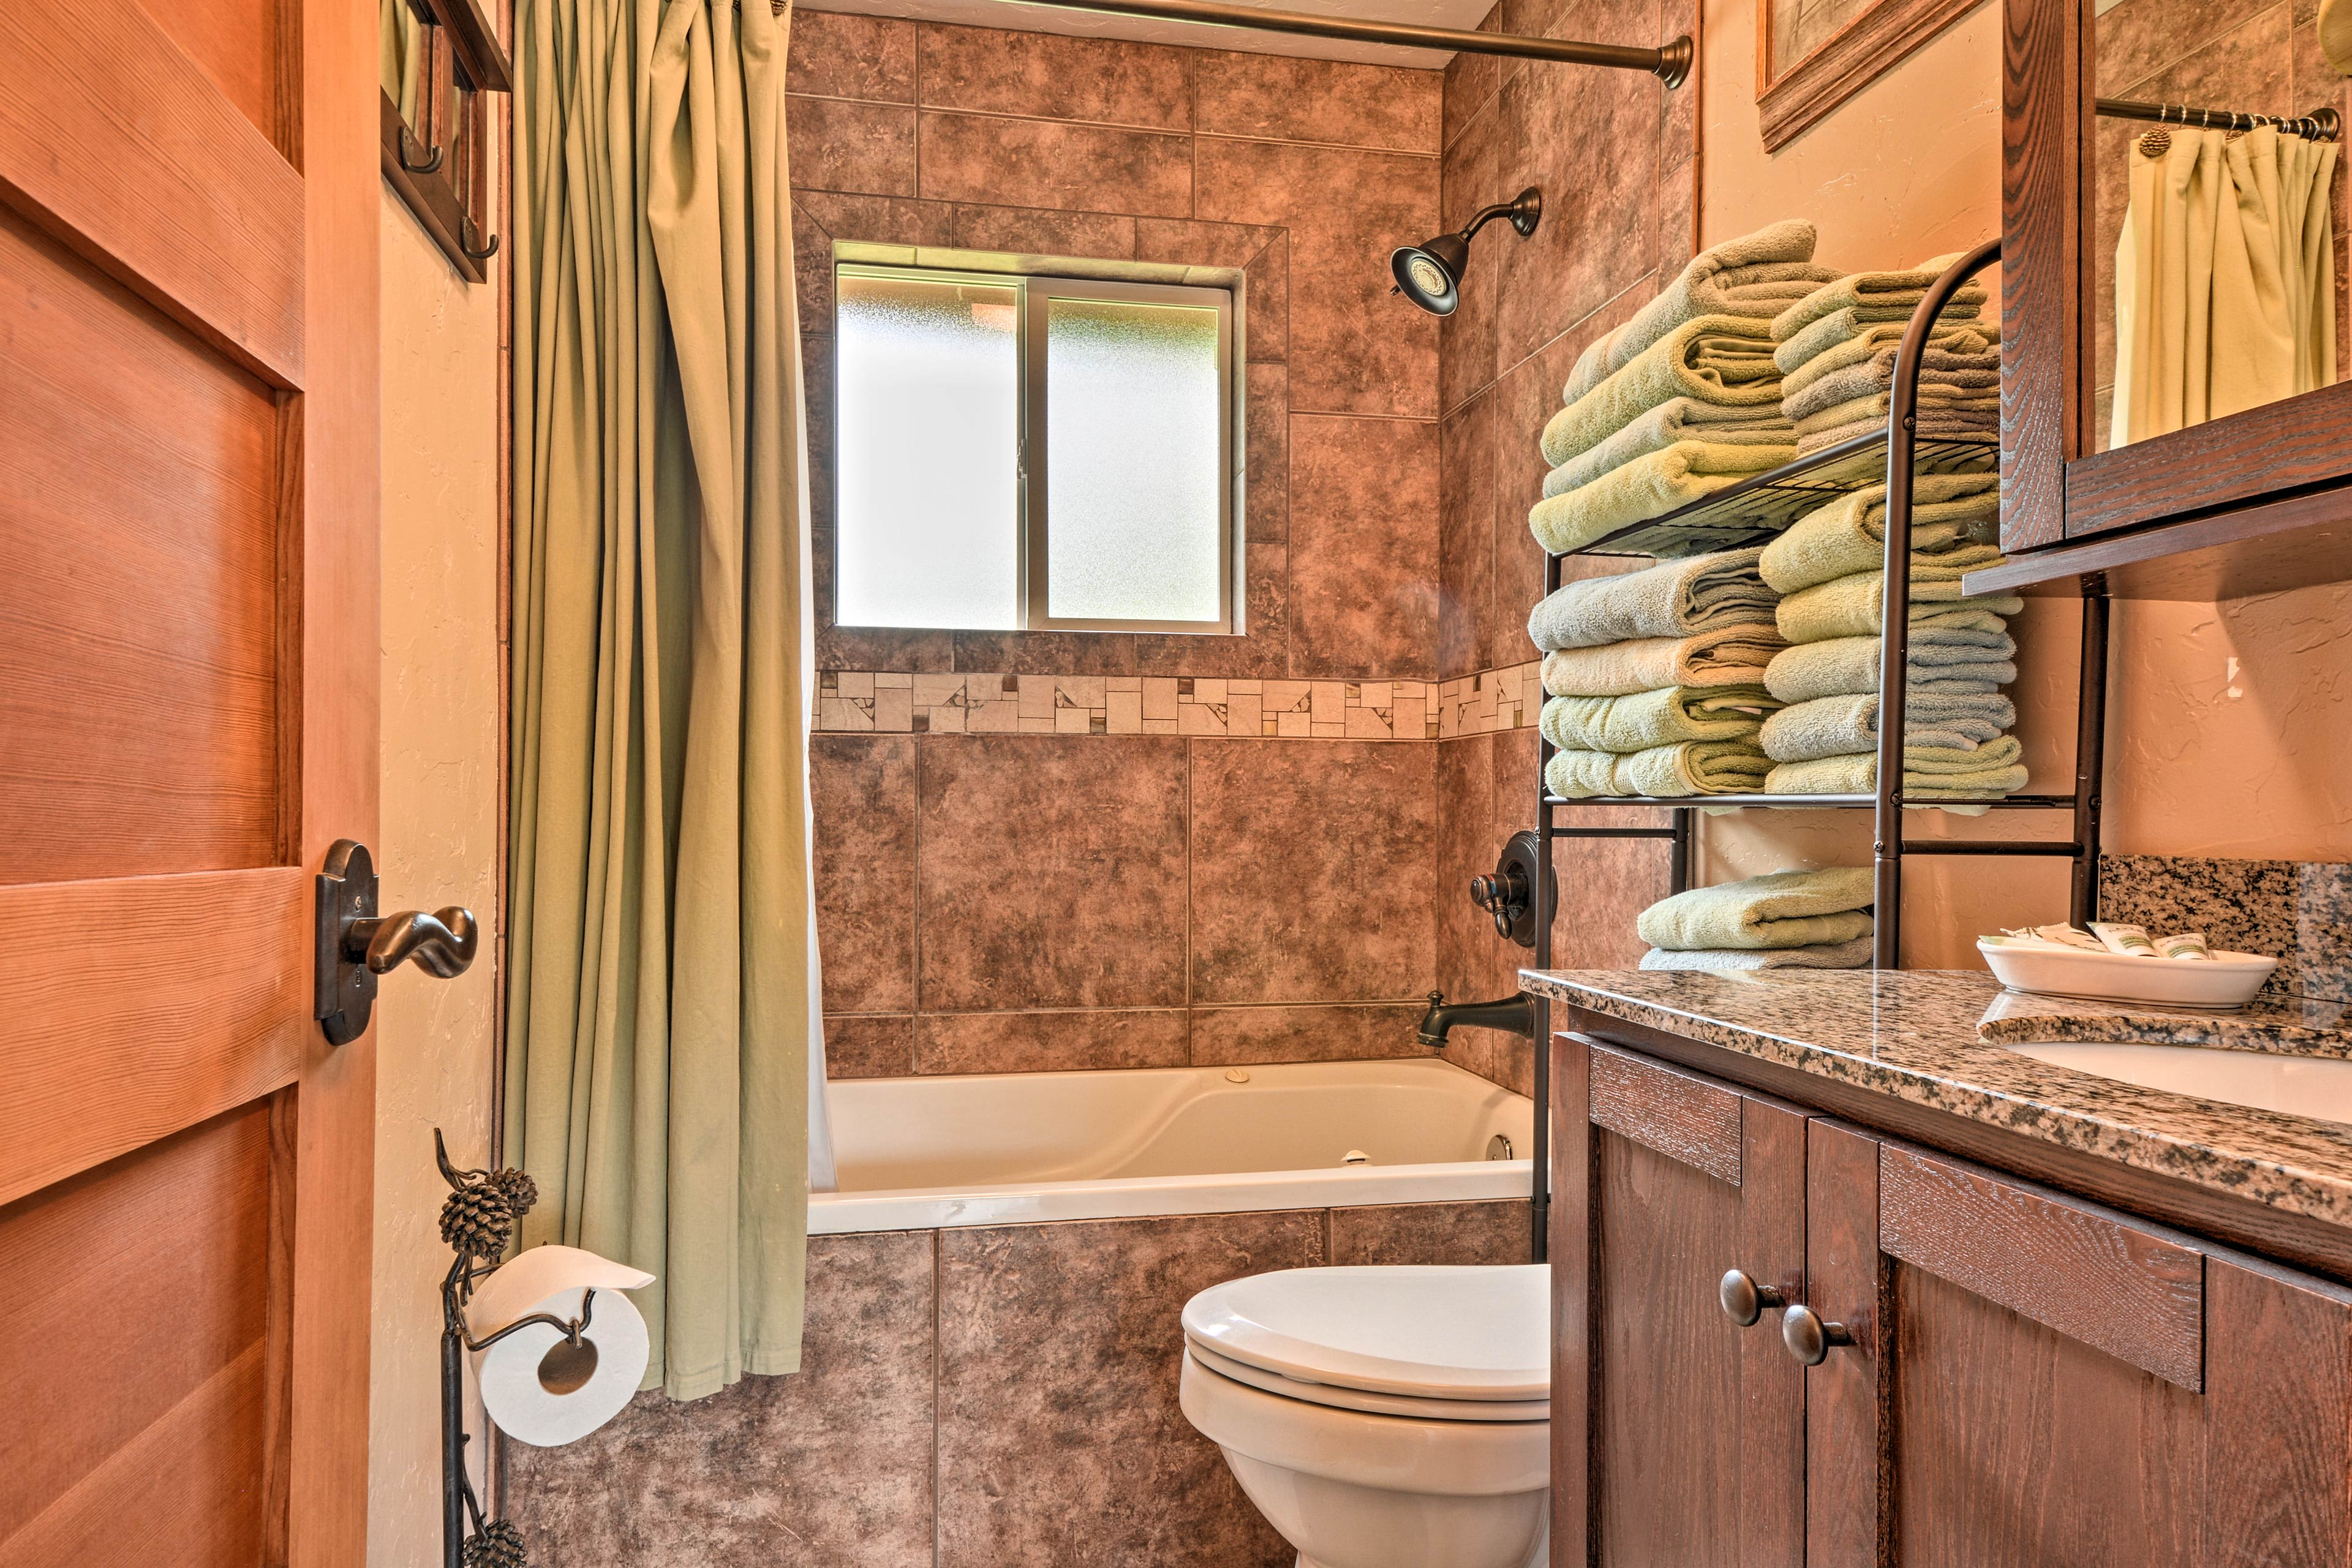 Find fresh towels awaiting your arrival in the bathroom.